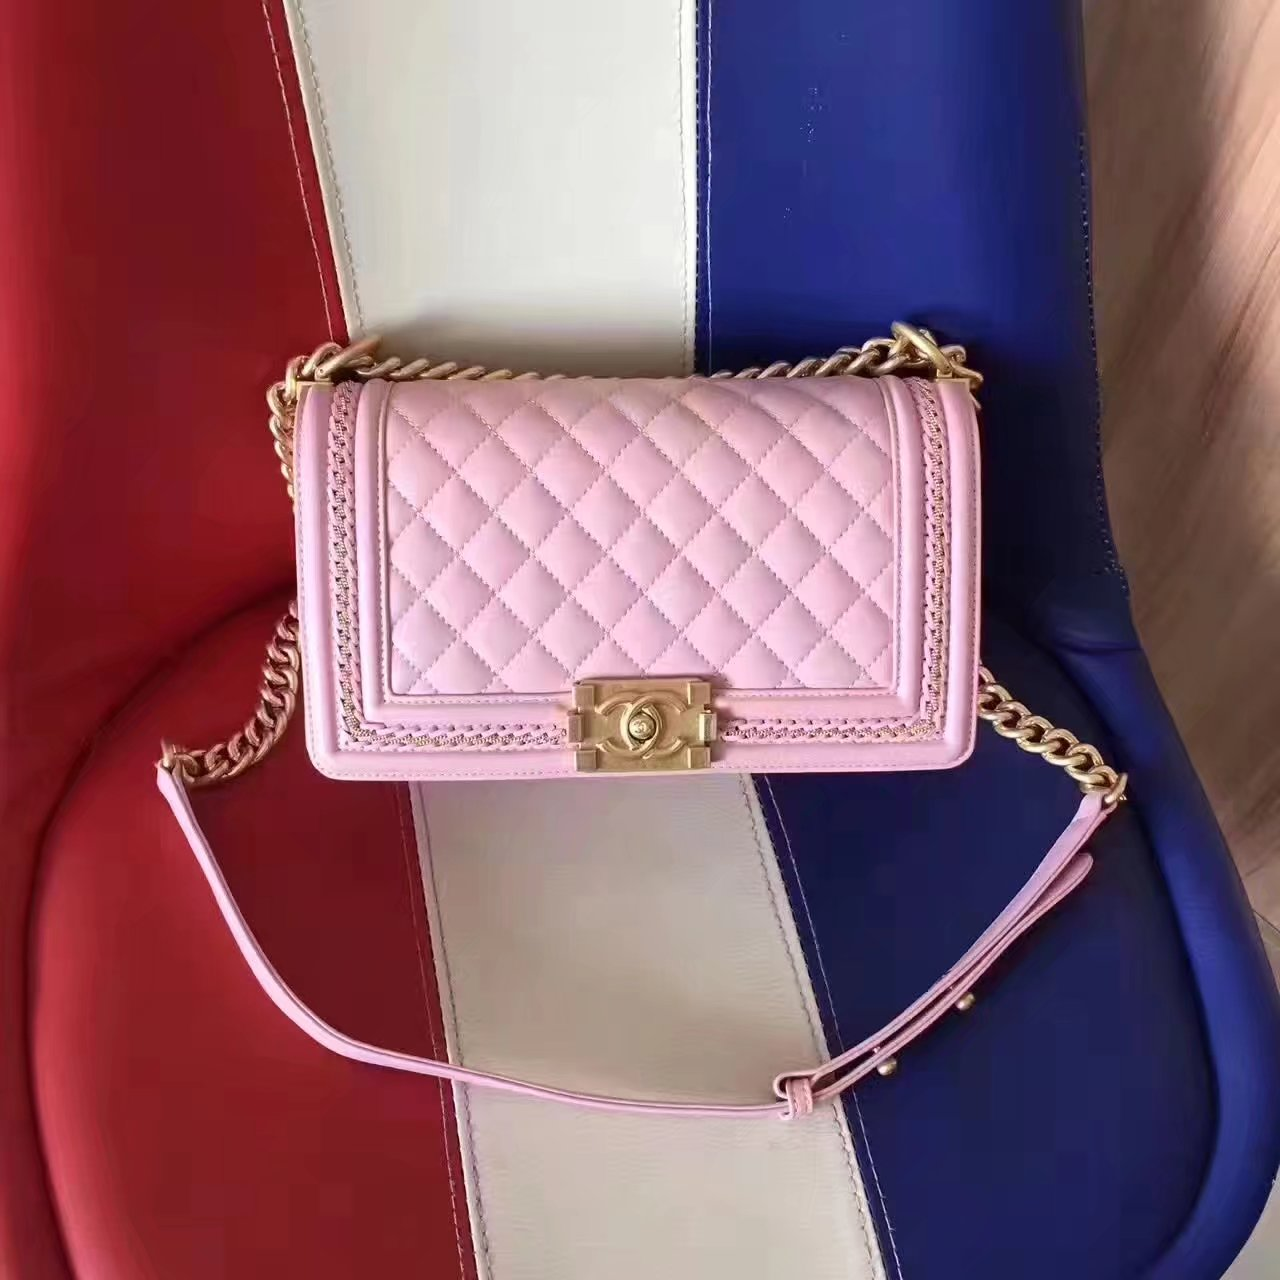 Chanel 2017 Boy Punched Chain Shoulder Bag Pink With Gold